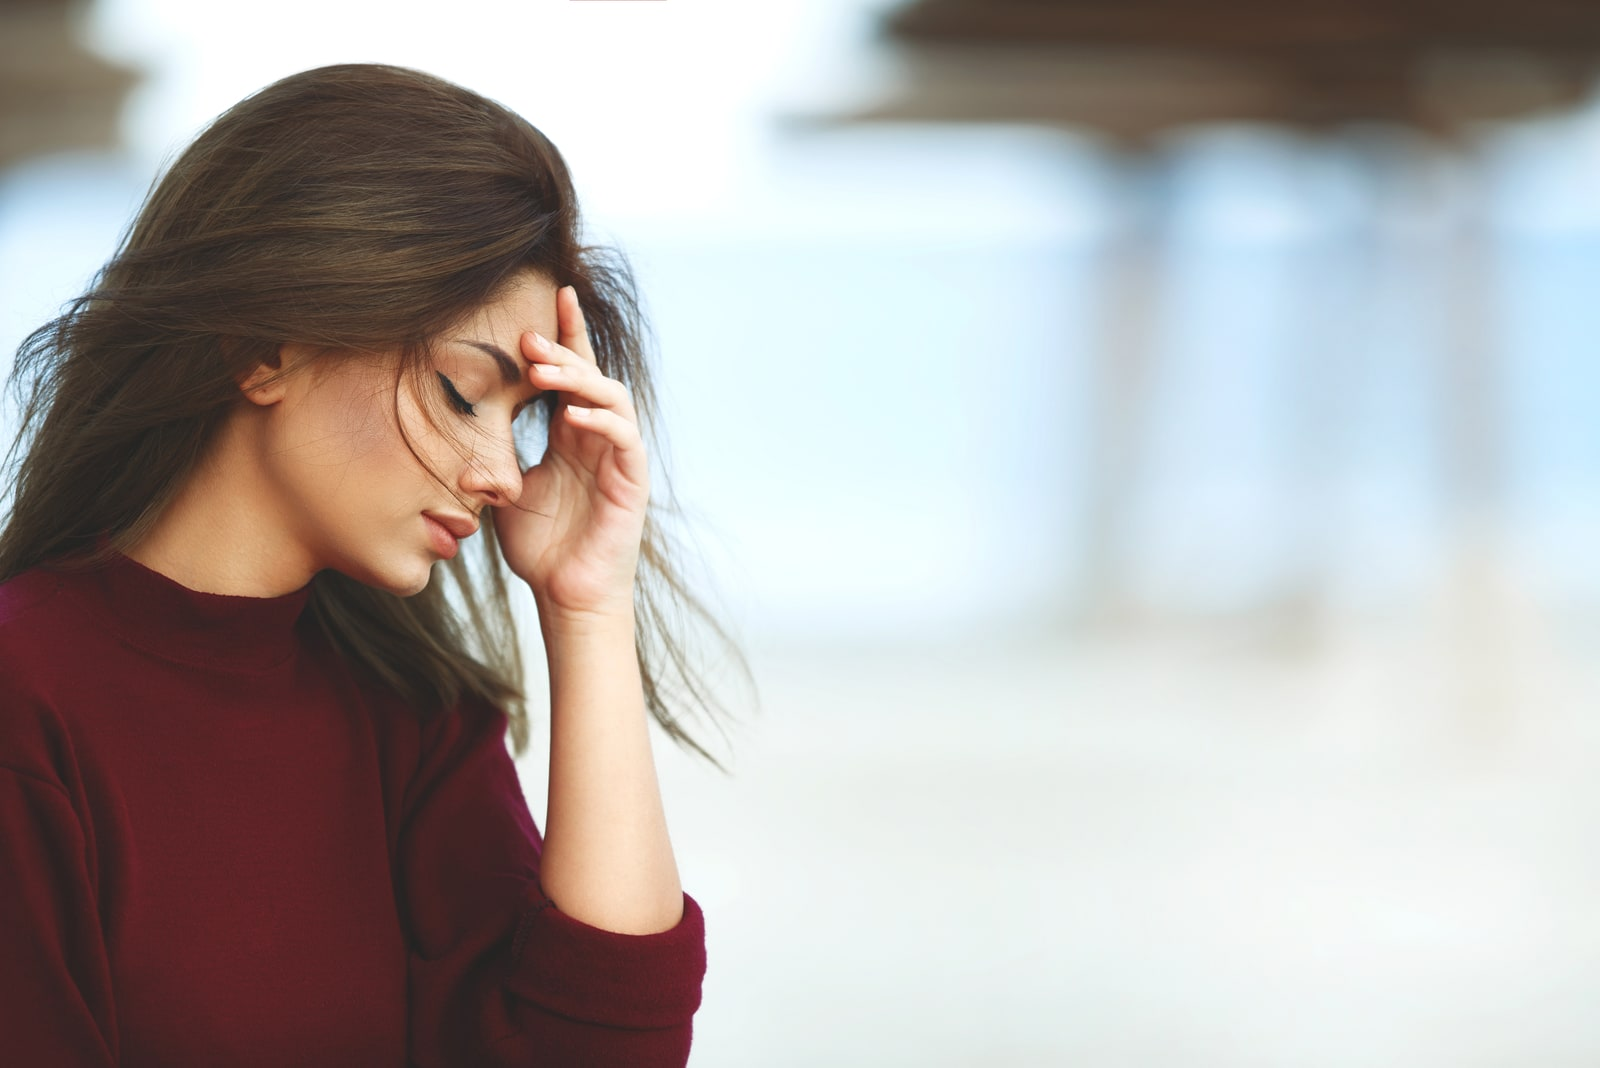 Inside The Mind Of A Girl Who Thinks She Can't Move On